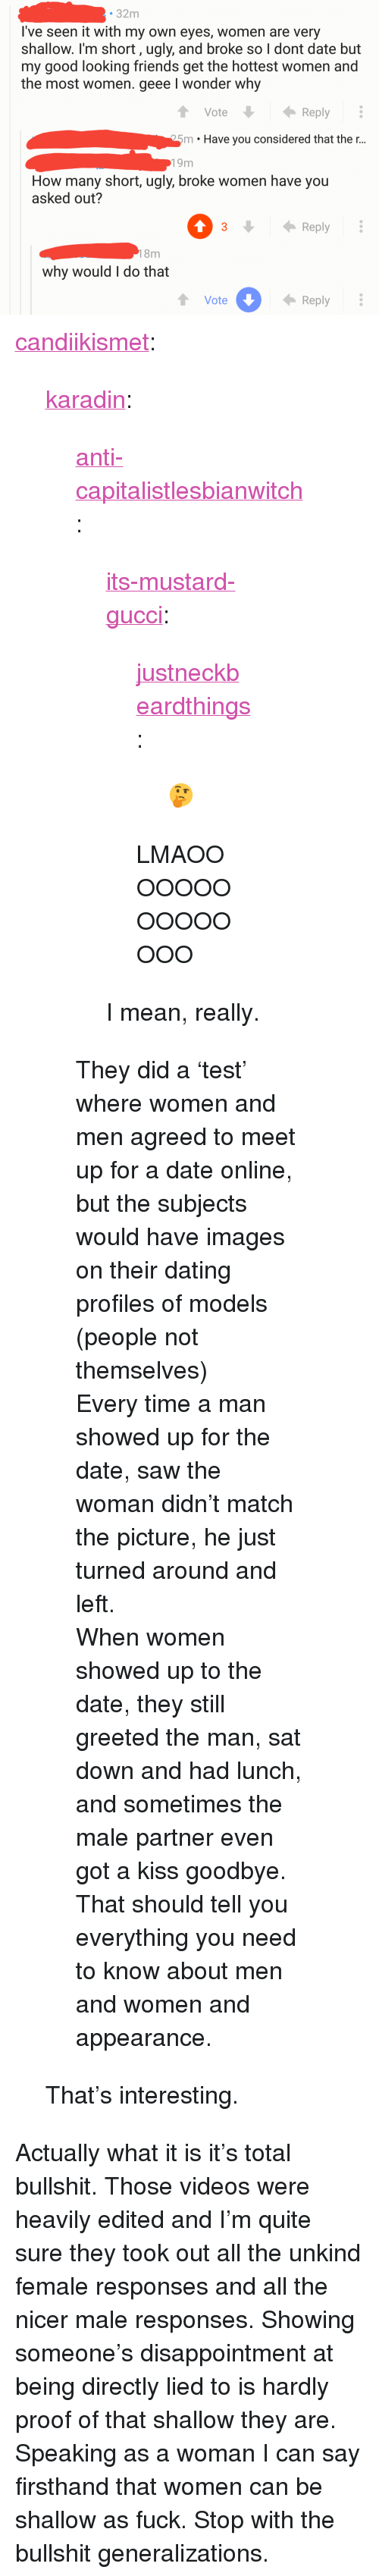 """im short: 32m  I've seen it with my own eyes, women are very  shallow. I'm short, ugly, and broke so l dont date but  my good looking friends get the hottest women and  the most women. geee I wonder why  VoteReply  25m . Have you considered that the r..  19m  How many short, ugly, broke women have you  asked out?  3Reply  8m  why would I do that  Vote  Reply <p><a href=""""http://candiikismet.tumblr.com/post/161964122616/karadin-anti-capitalistlesbianwitch"""" class=""""tumblr_blog"""">candiikismet</a>:</p>  <blockquote><p><a href=""""http://karadin.tumblr.com/post/161962781063/anti-capitalistlesbianwitch-its-mustard-gucci"""" class=""""tumblr_blog"""">karadin</a>:</p>  <blockquote><p><a href=""""https://anti-capitalistlesbianwitch.tumblr.com/post/161962201901/its-mustard-gucci-justneckbeardthings"""" class=""""tumblr_blog"""">anti-capitalistlesbianwitch</a>:</p><blockquote> <p><a href=""""http://its-mustard-gucci.tumblr.com/post/161911741753/justneckbeardthings-lmaooooooooooooooo"""" class=""""tumblr_blog"""">its-mustard-gucci</a>:</p> <blockquote> <p><a href=""""http://justneckbeardthings.tumblr.com/post/161887312339"""" class=""""tumblr_blog"""">justneckbeardthings</a>:</p> <blockquote><p>🤔</p></blockquote>  <p>LMAOOOOOOOOOOOOOOO</p> </blockquote> <p>I mean, really.</p> </blockquote> <p>They did a'test' where women and men agreed to meet up for a date online, but the subjects would have images on their dating profiles of models (people not themselves)</p><p>Every time a man showed up for the date, saw the woman didn't match the picture, he just turned around and left.</p><p>When women showed up to the date, they still greeted the man, sat down and had lunch, and sometimes the male partner even got a kiss goodbye. That should tell you everything you need to know about men and women and appearance.</p></blockquote>  <p>That's interesting.</p></blockquote>  <p>Actually what it is it's total bullshit. Those videos were heavily edited and I'm quite sure they took out all the unkind female responses and all the nicer male respo"""